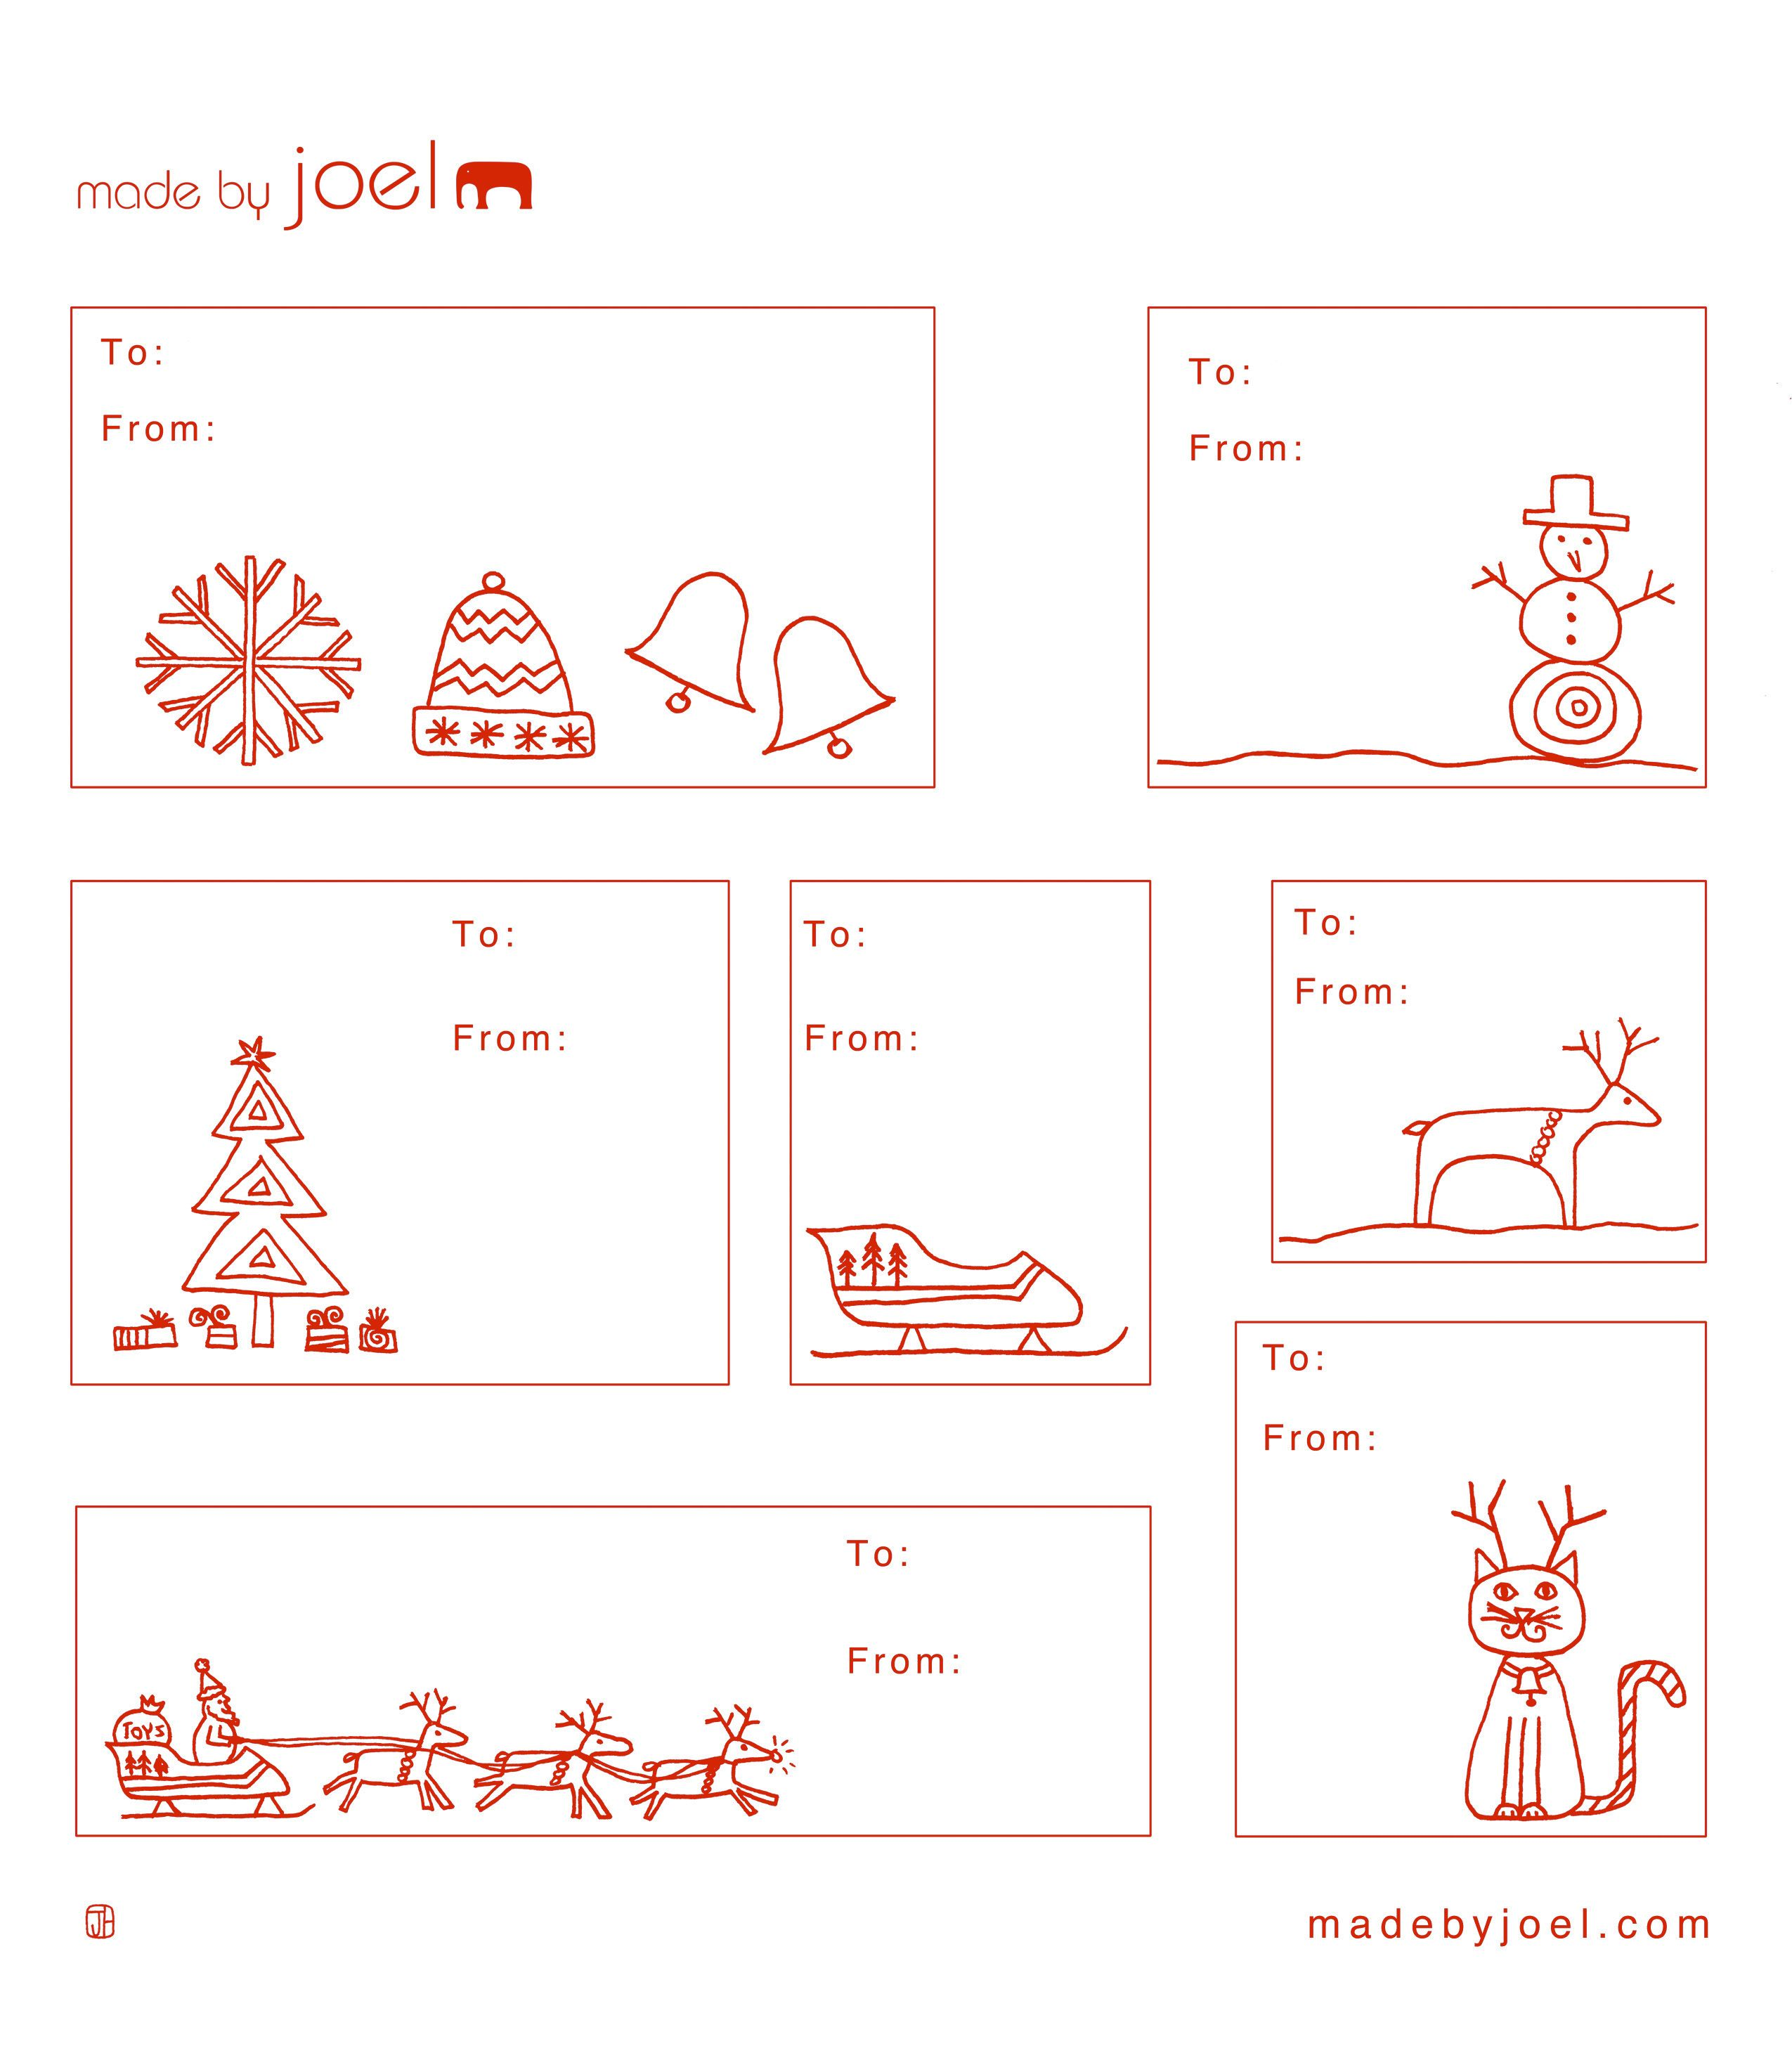 picture regarding Free Printable Christmas Tags Templates named Free of charge Printable: Created through Joel » Getaway Reward Tag Templates